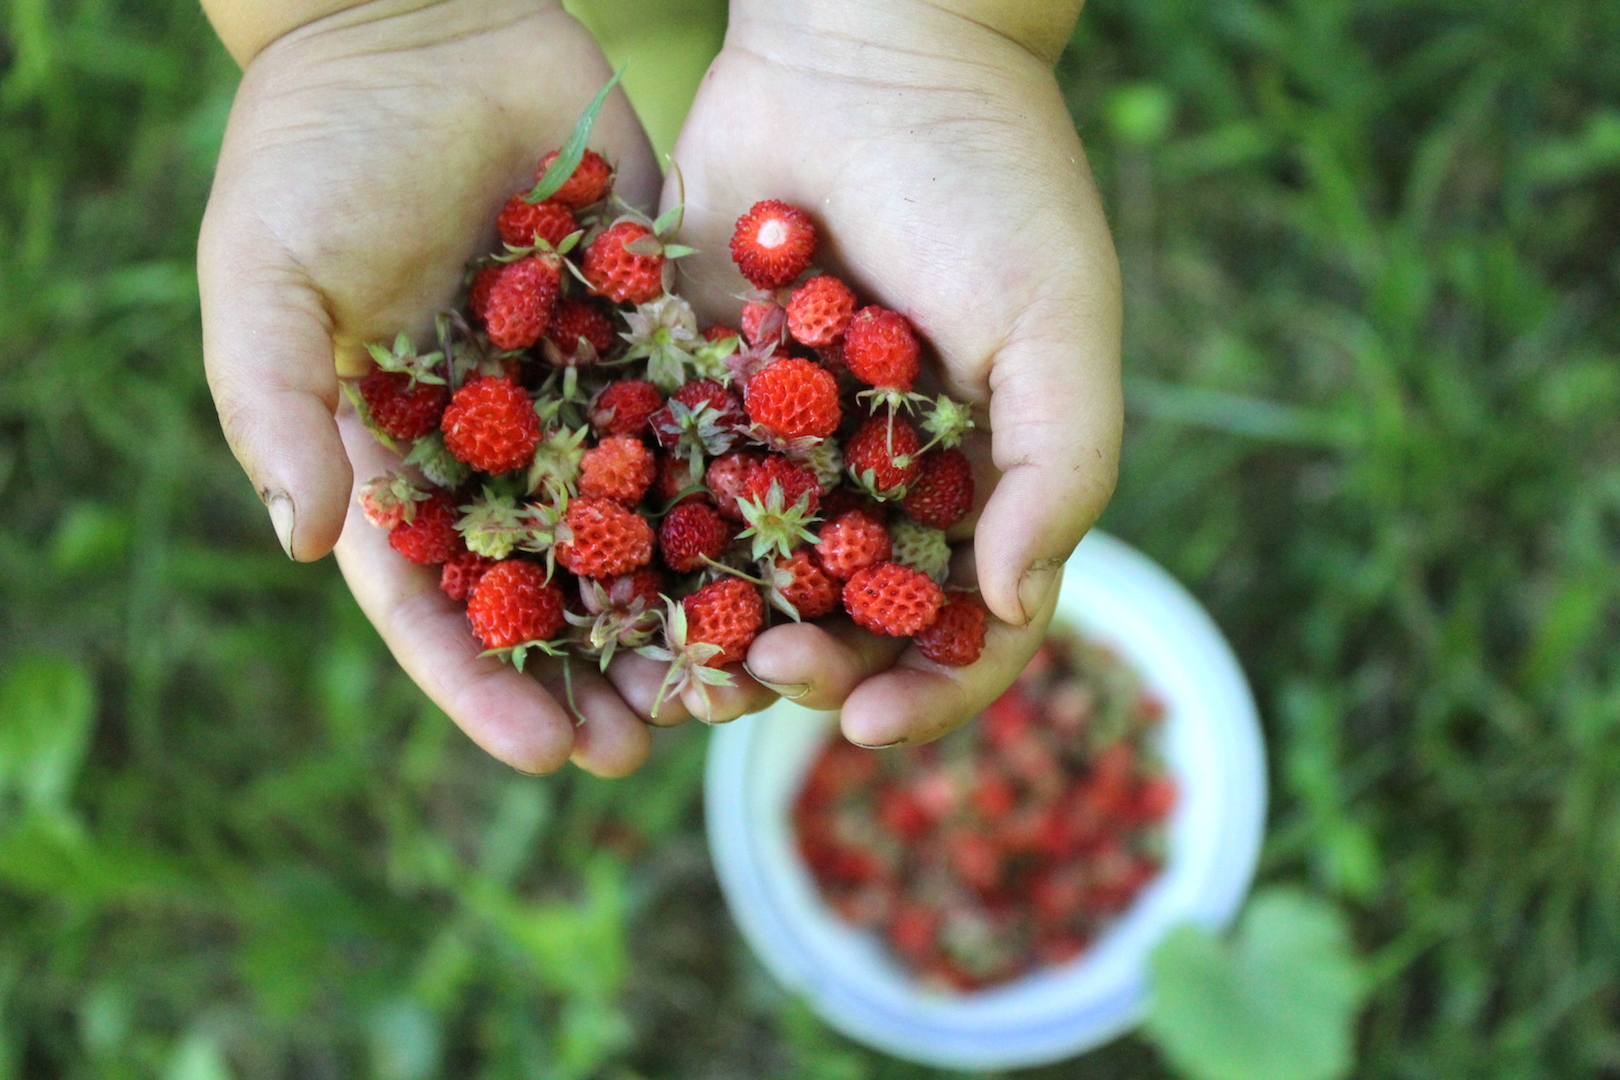 Harvesting Wild Strawberries